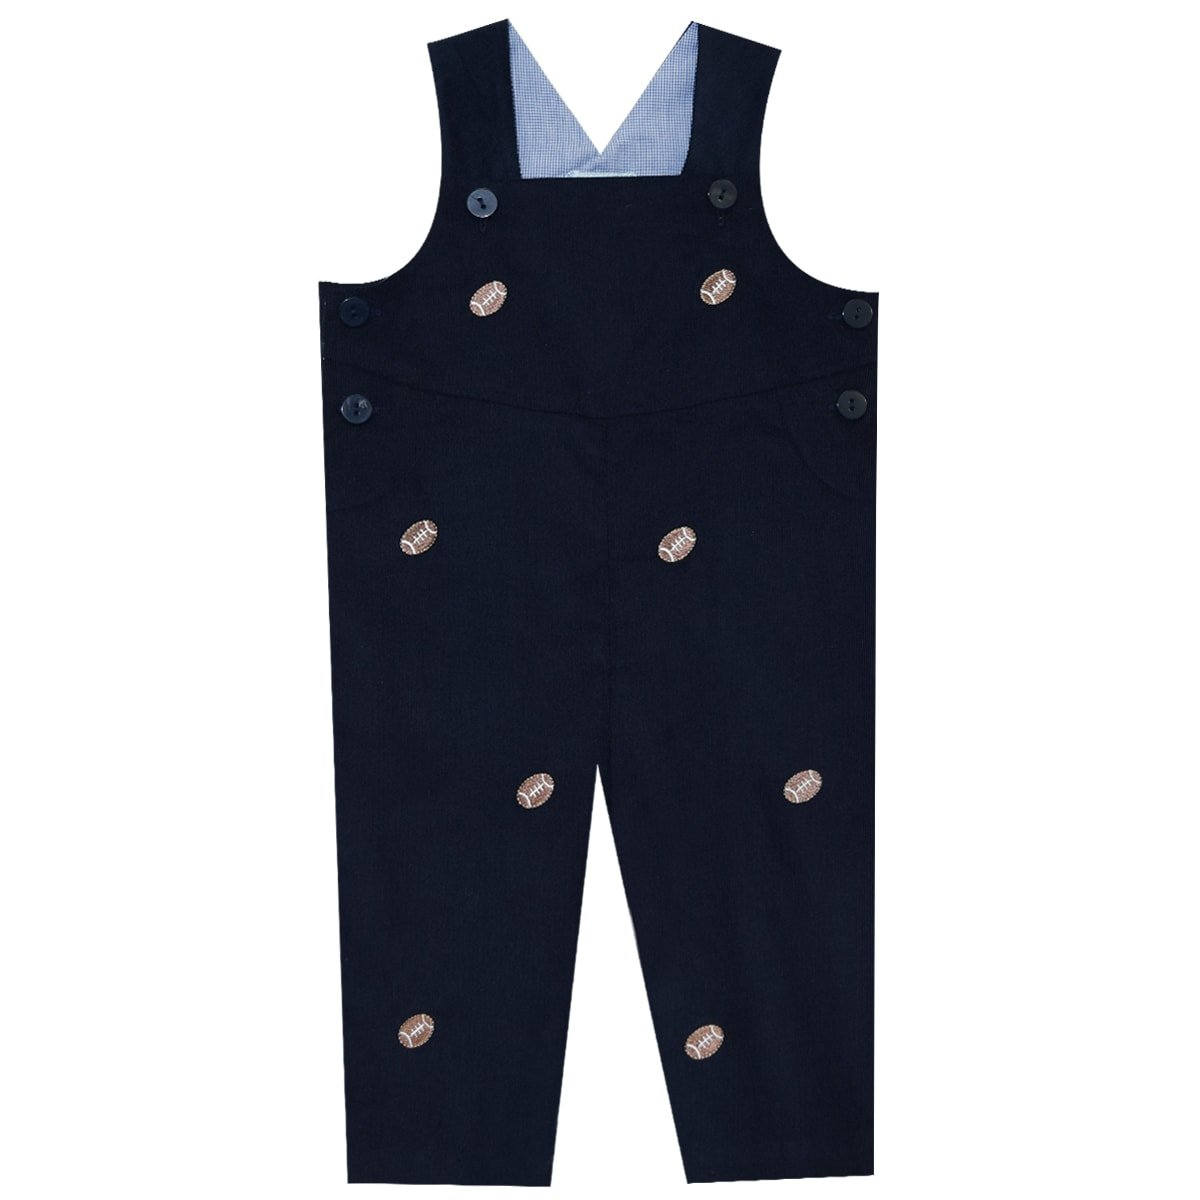 K & L EMBROIDERY COLLECTION Football Embroidered Boys Overall Vive La Fete